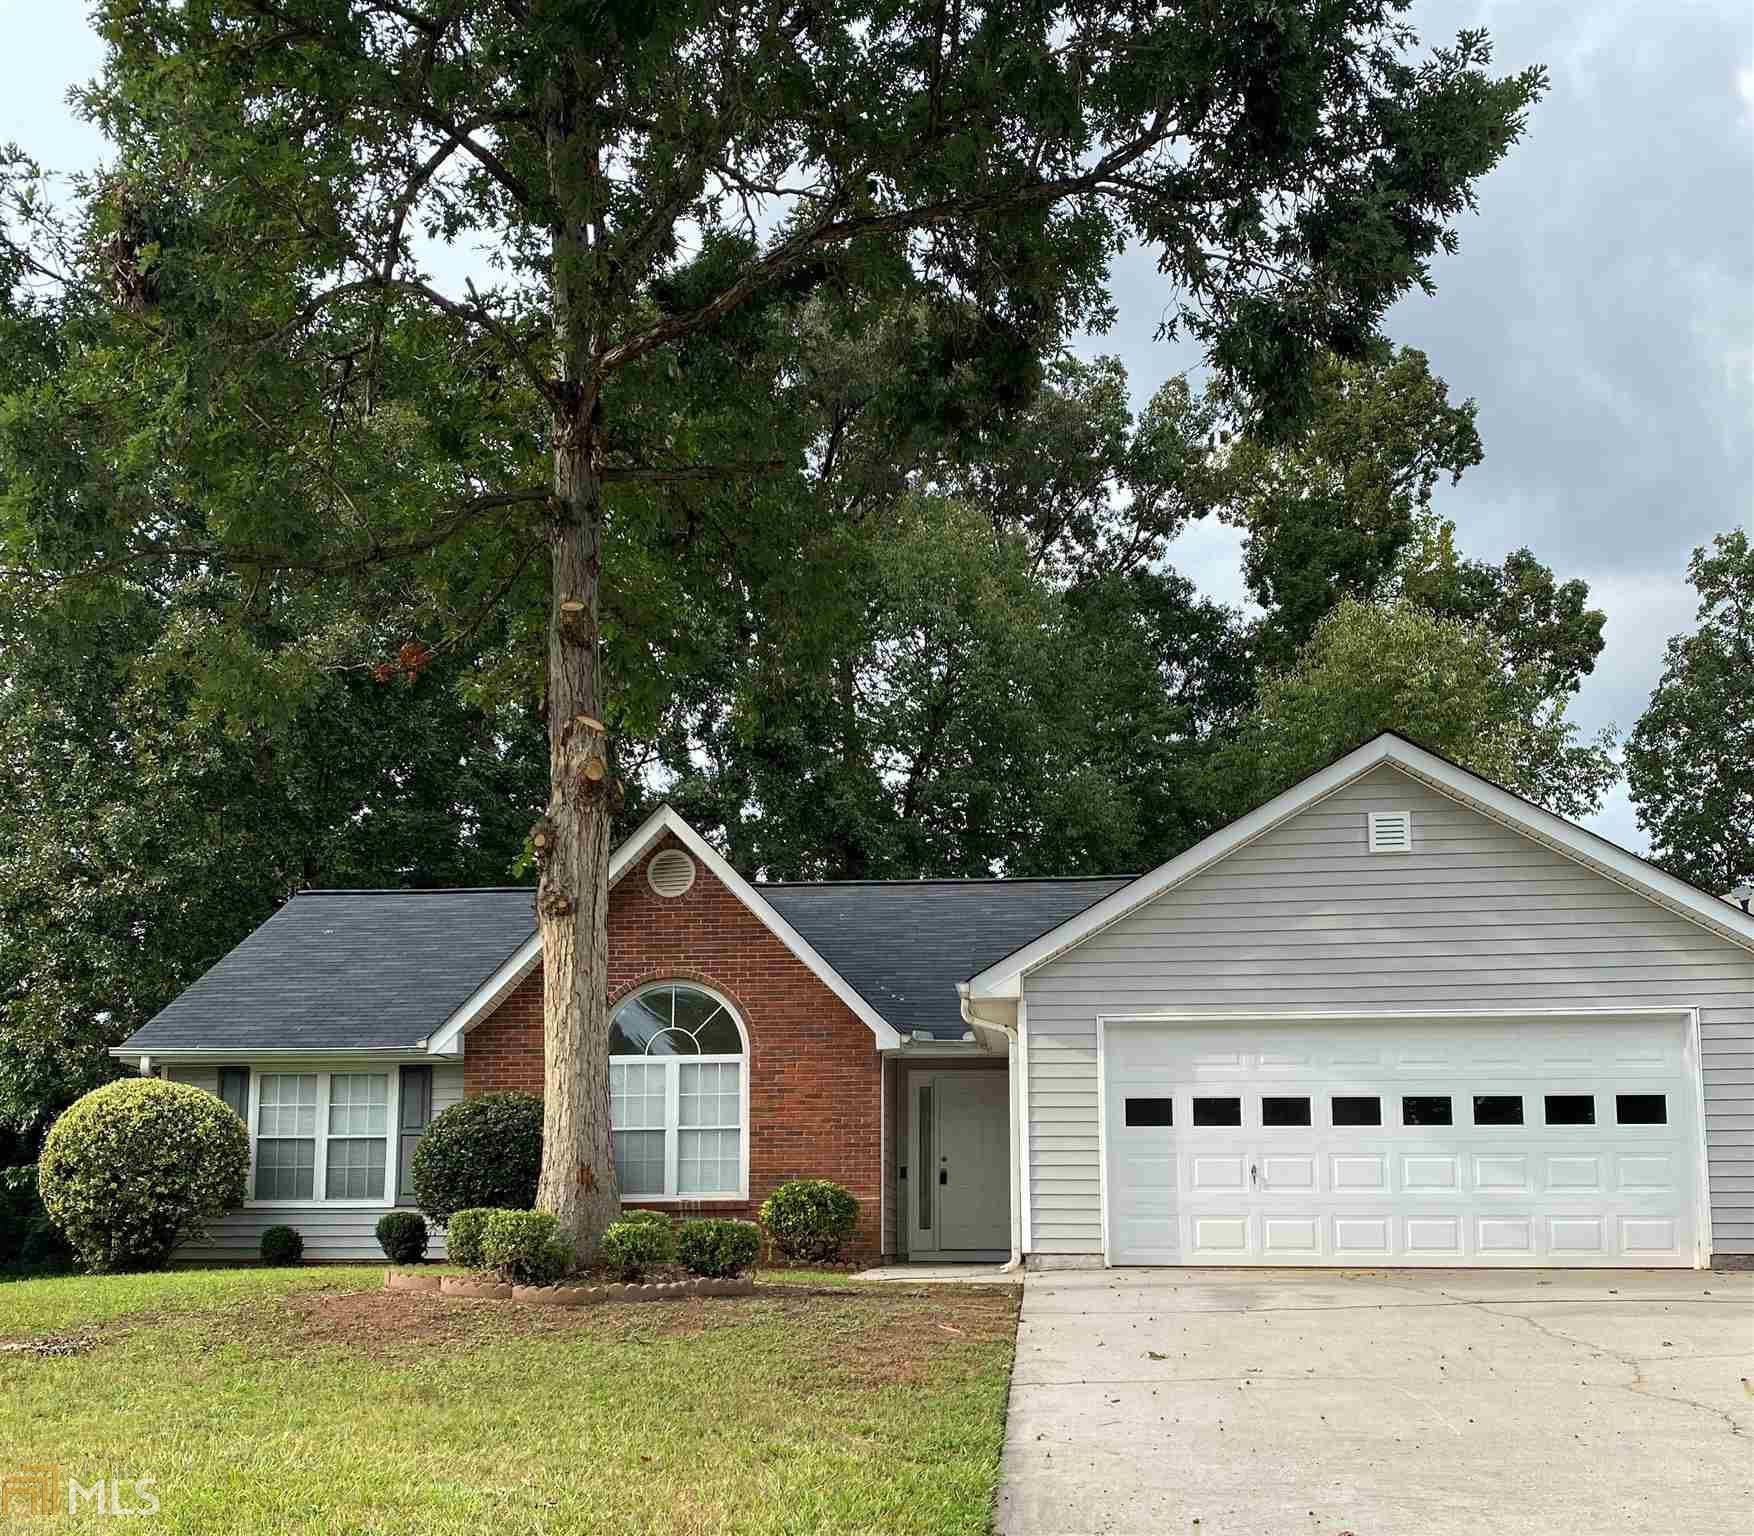 2816 Silver Queen Rd, Ellenwood, GA 30294 - #: 8860166